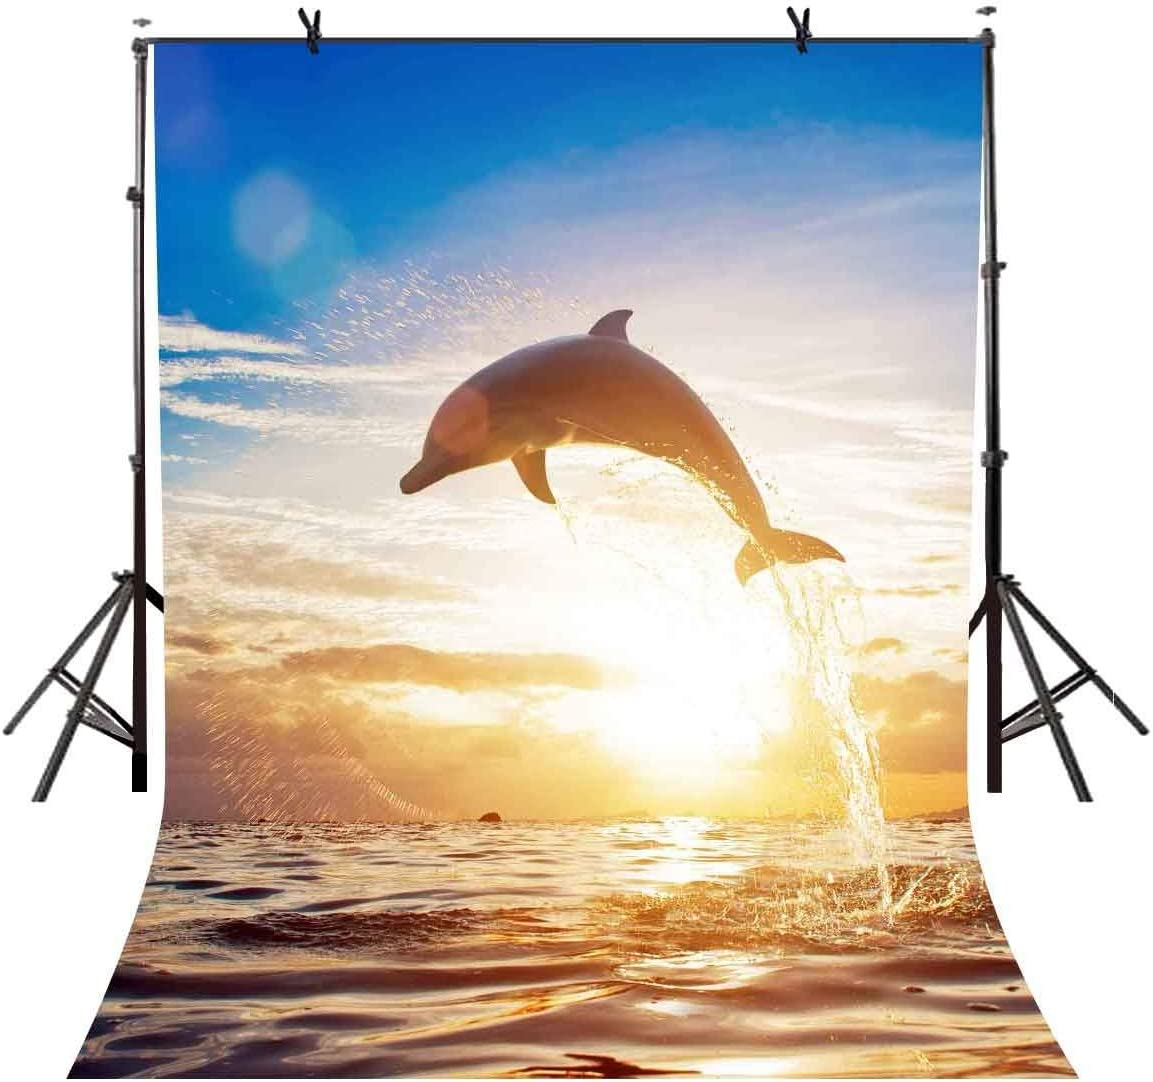 GoEoo 5x7ft Dolphin Backdrop Sunset Jumping Dolphin Photography Backdrop Photo Studio Background Props LYXC081